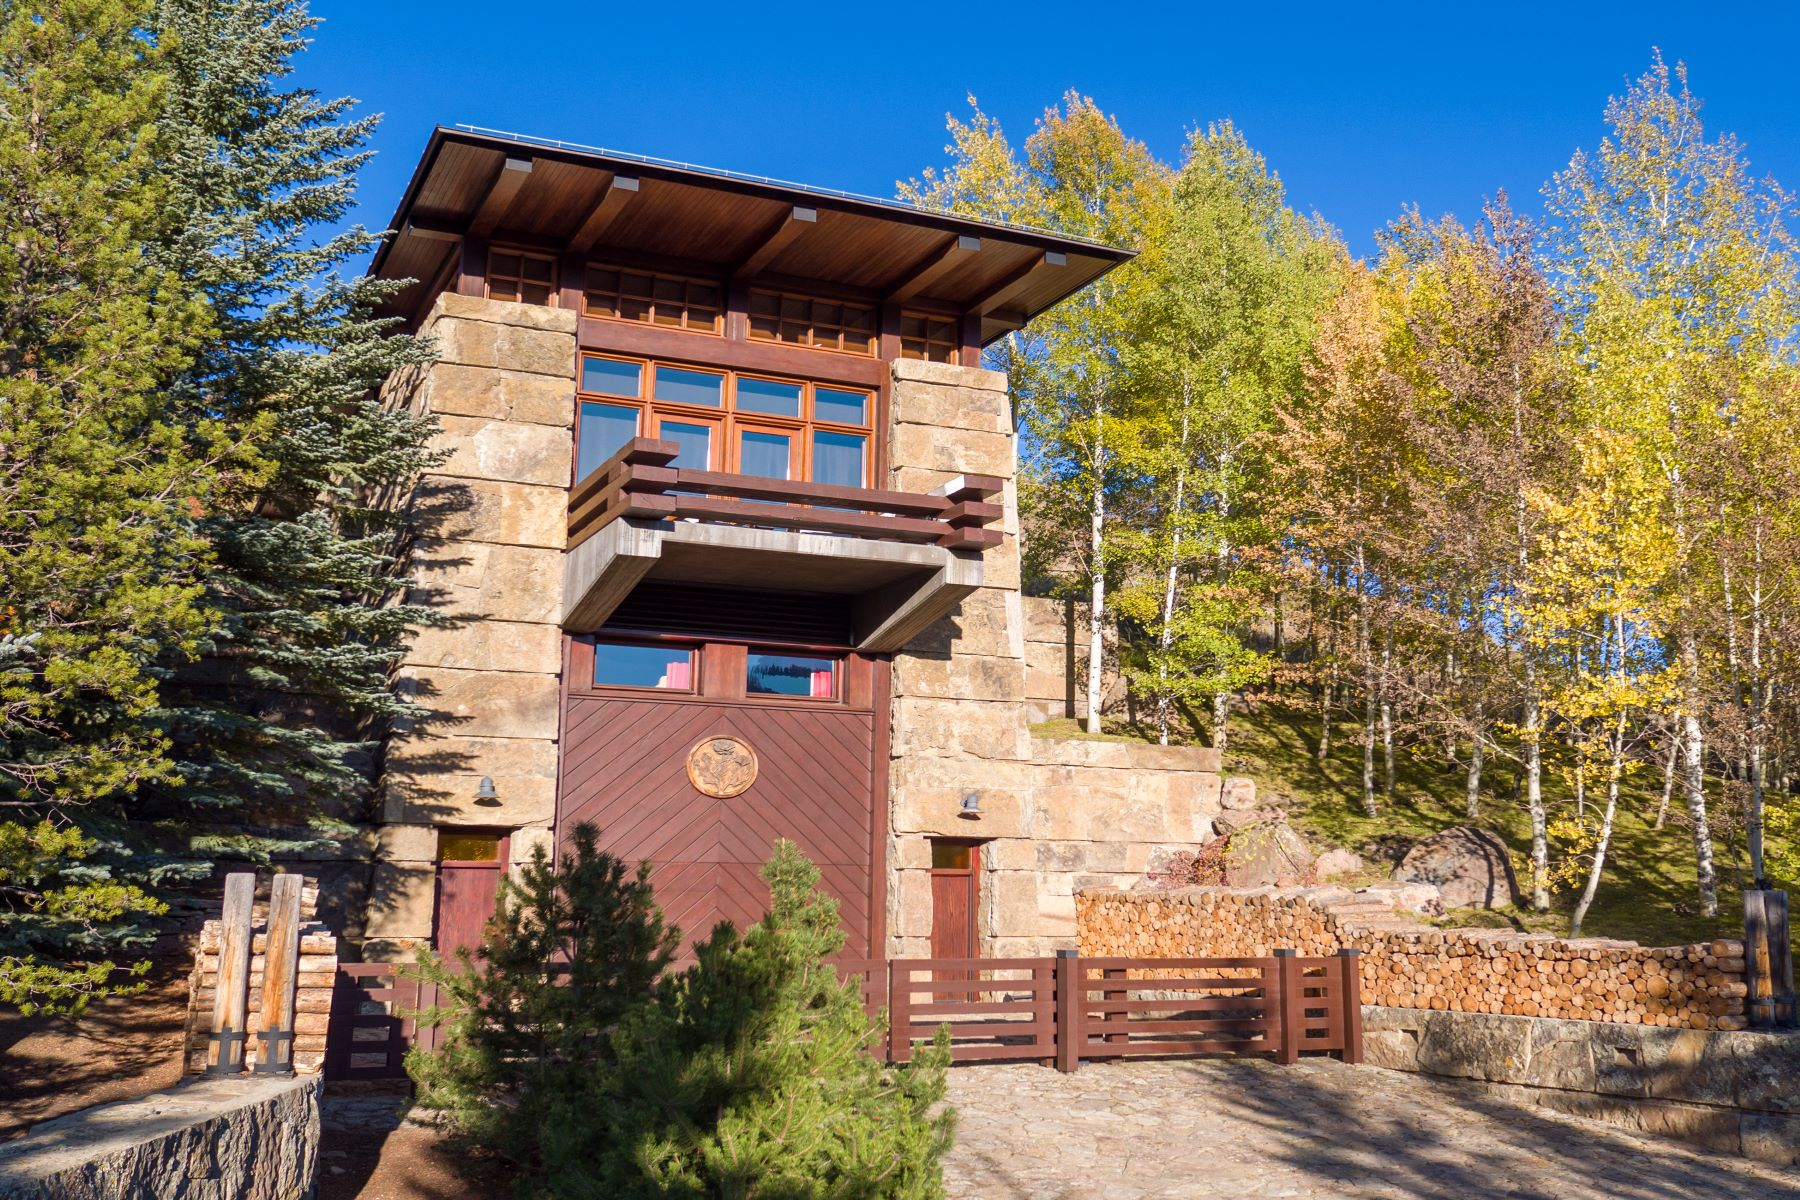 Single Family Homes for Sale at Iconic Knob Hill Residence 760 Walnut Ave Ketchum, Idaho 83340 United States